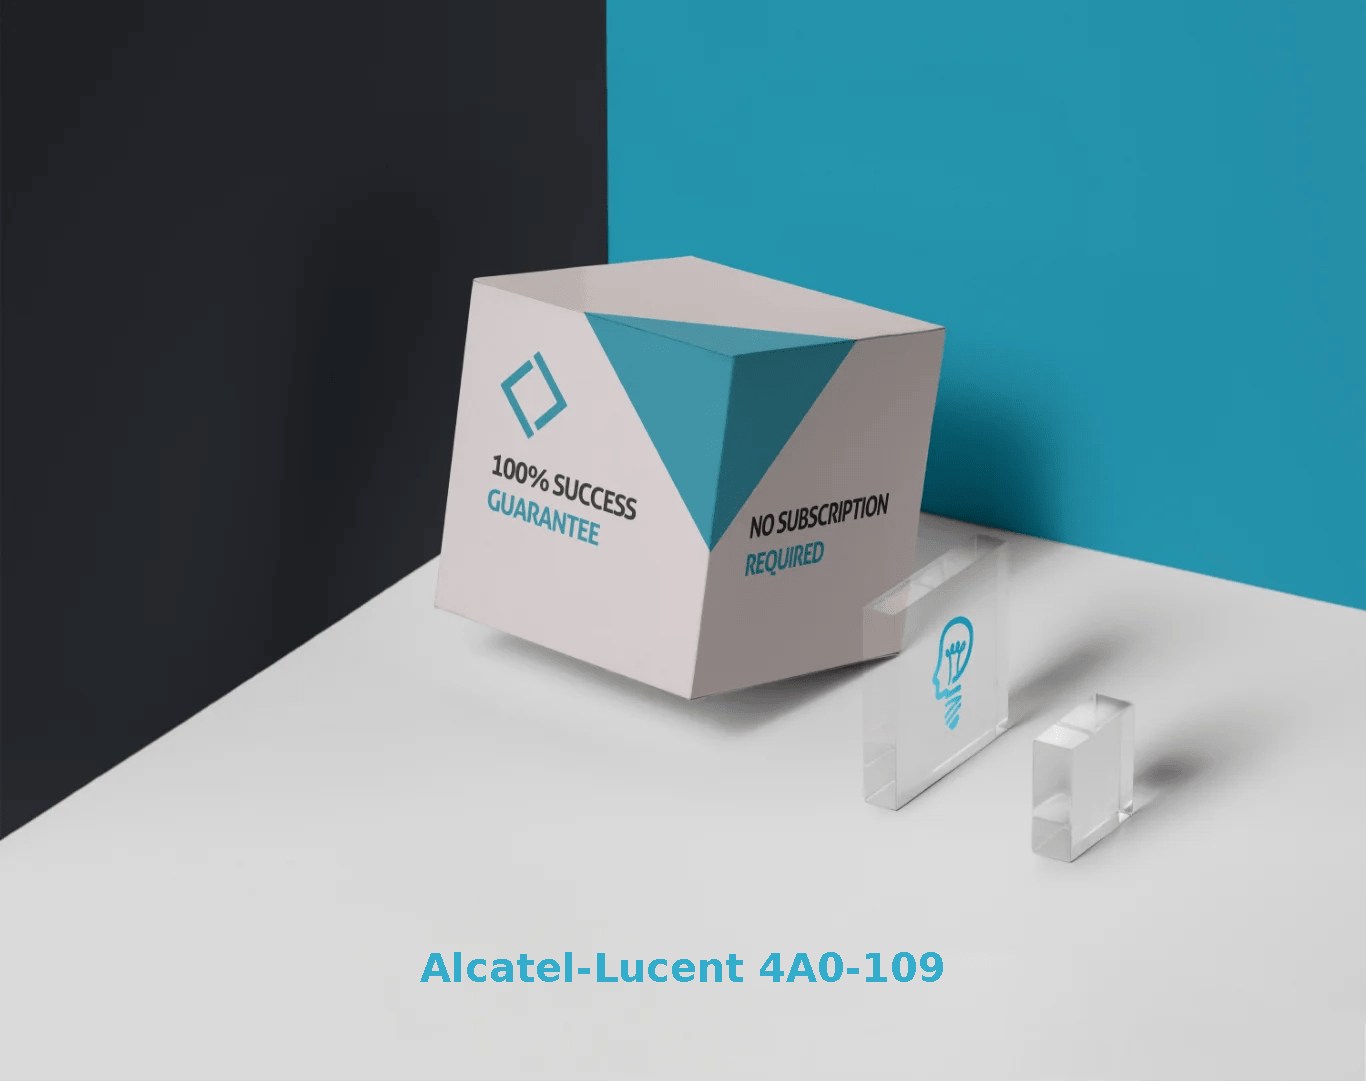 Alcatel-Lucent 4A0-109 Exams